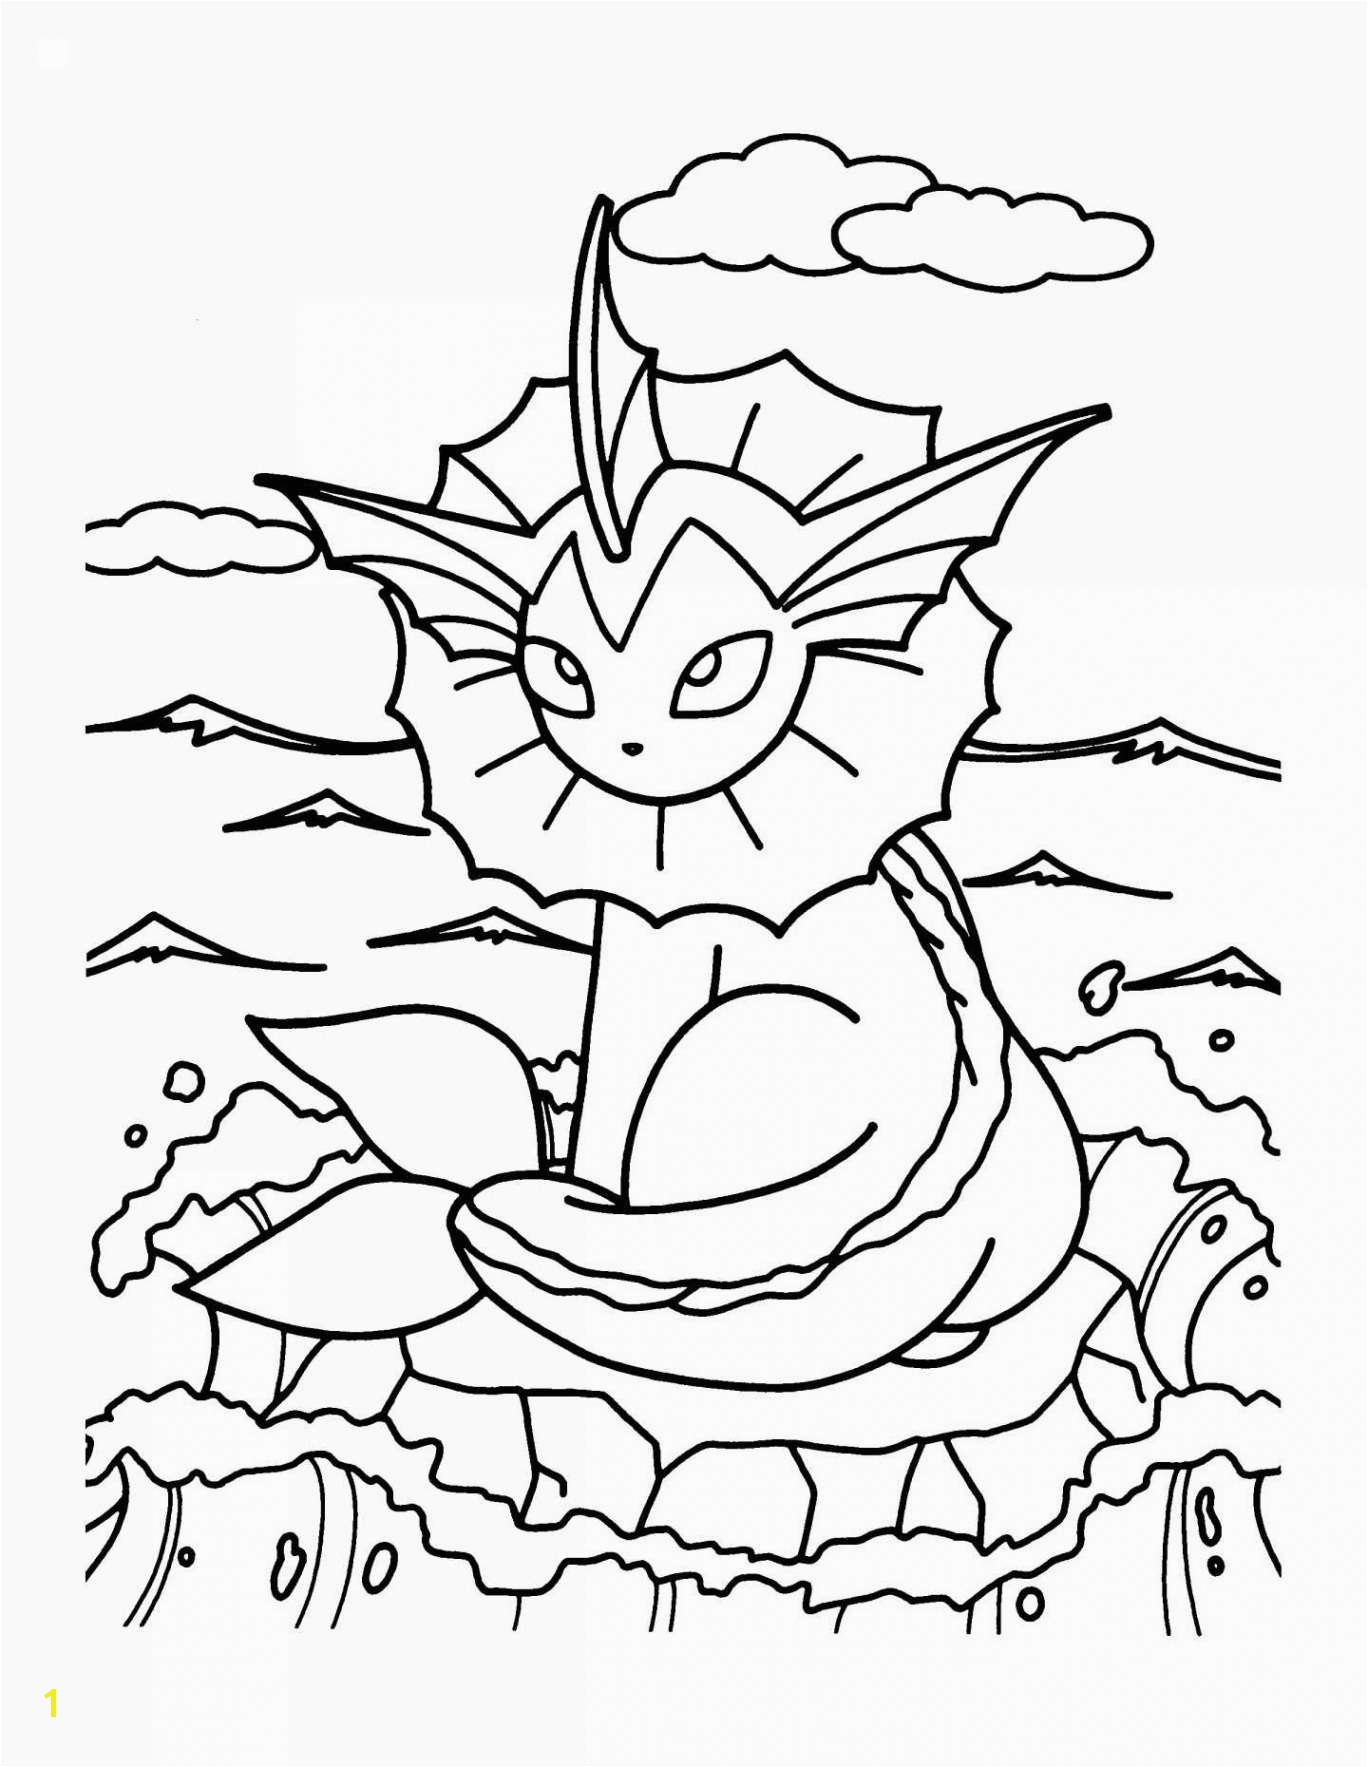 Princess Jasmine Coloring Book Printable Princess and the Frog Coloring Pages Fire Rescue